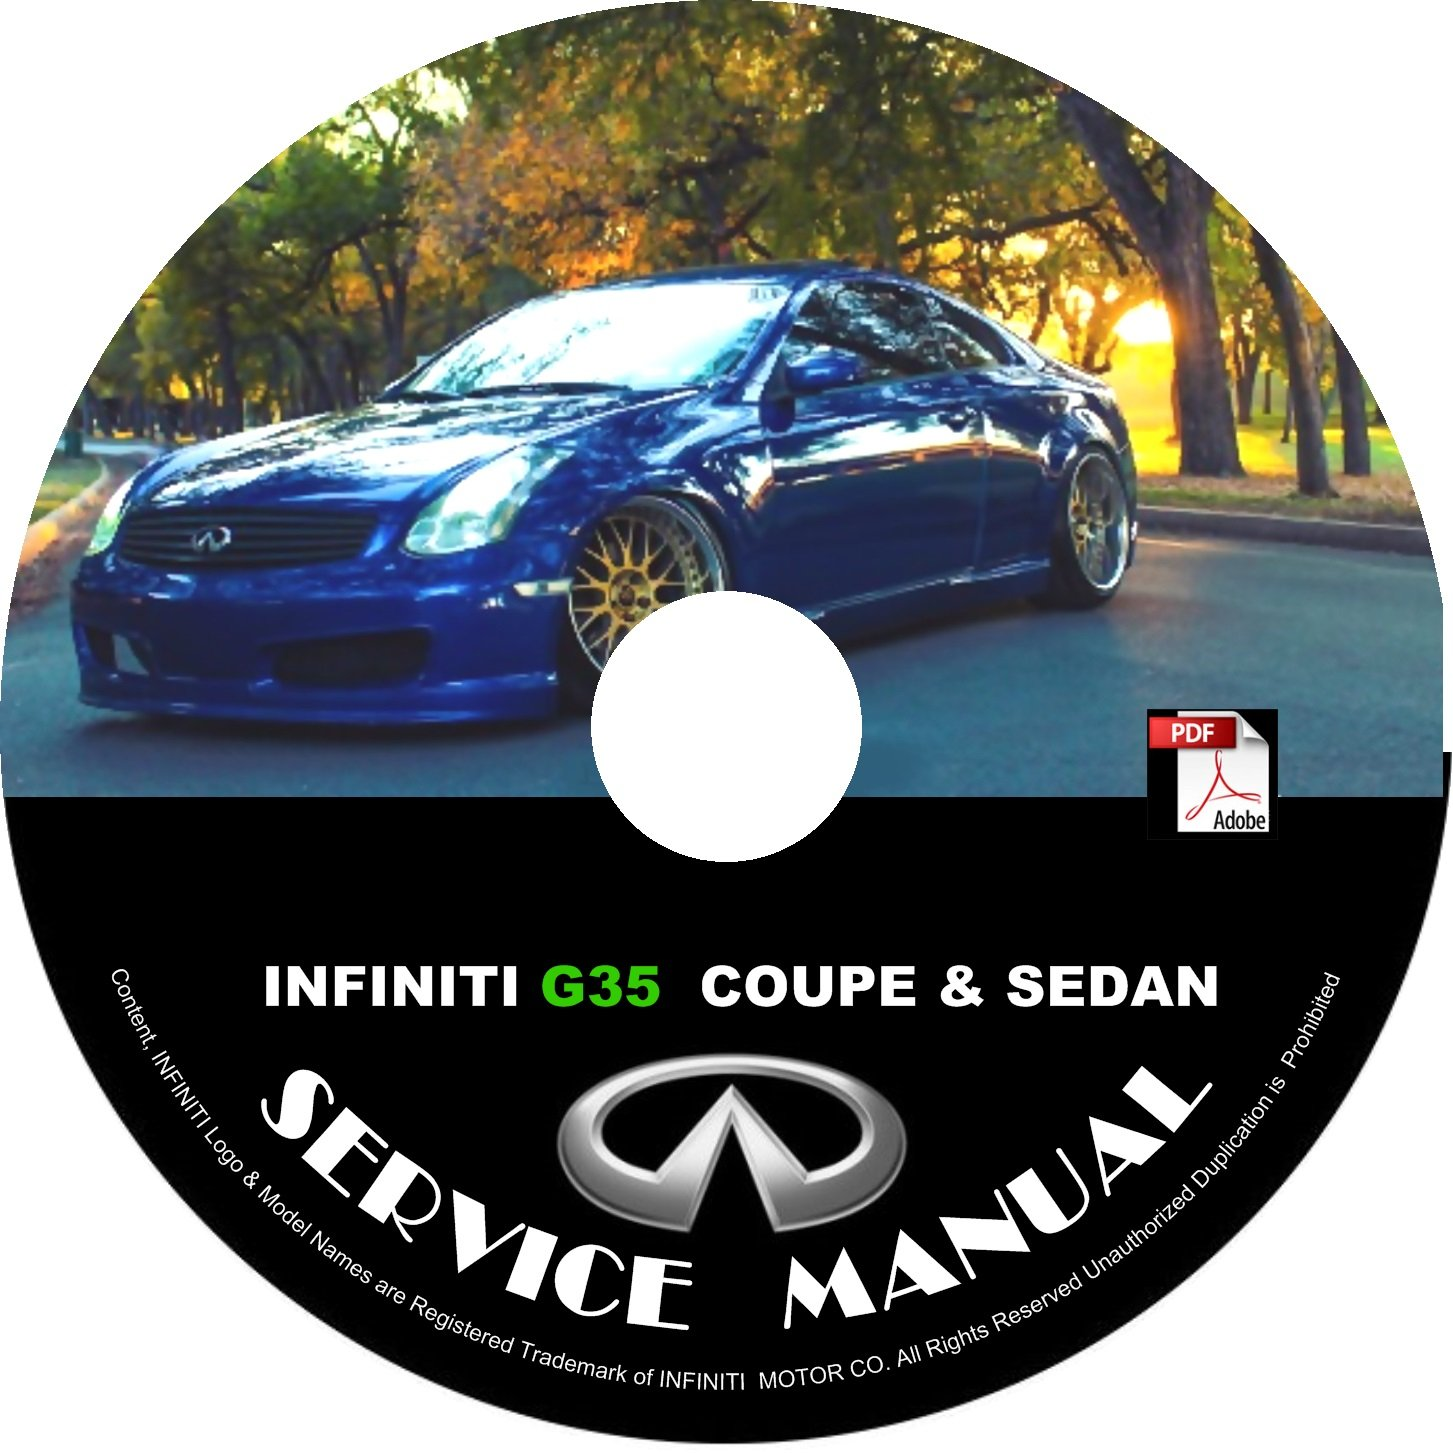 2006 Infiniti G35 Coupe & Sedan Factory Service Repair Shop Manual on CD 06 Workshop